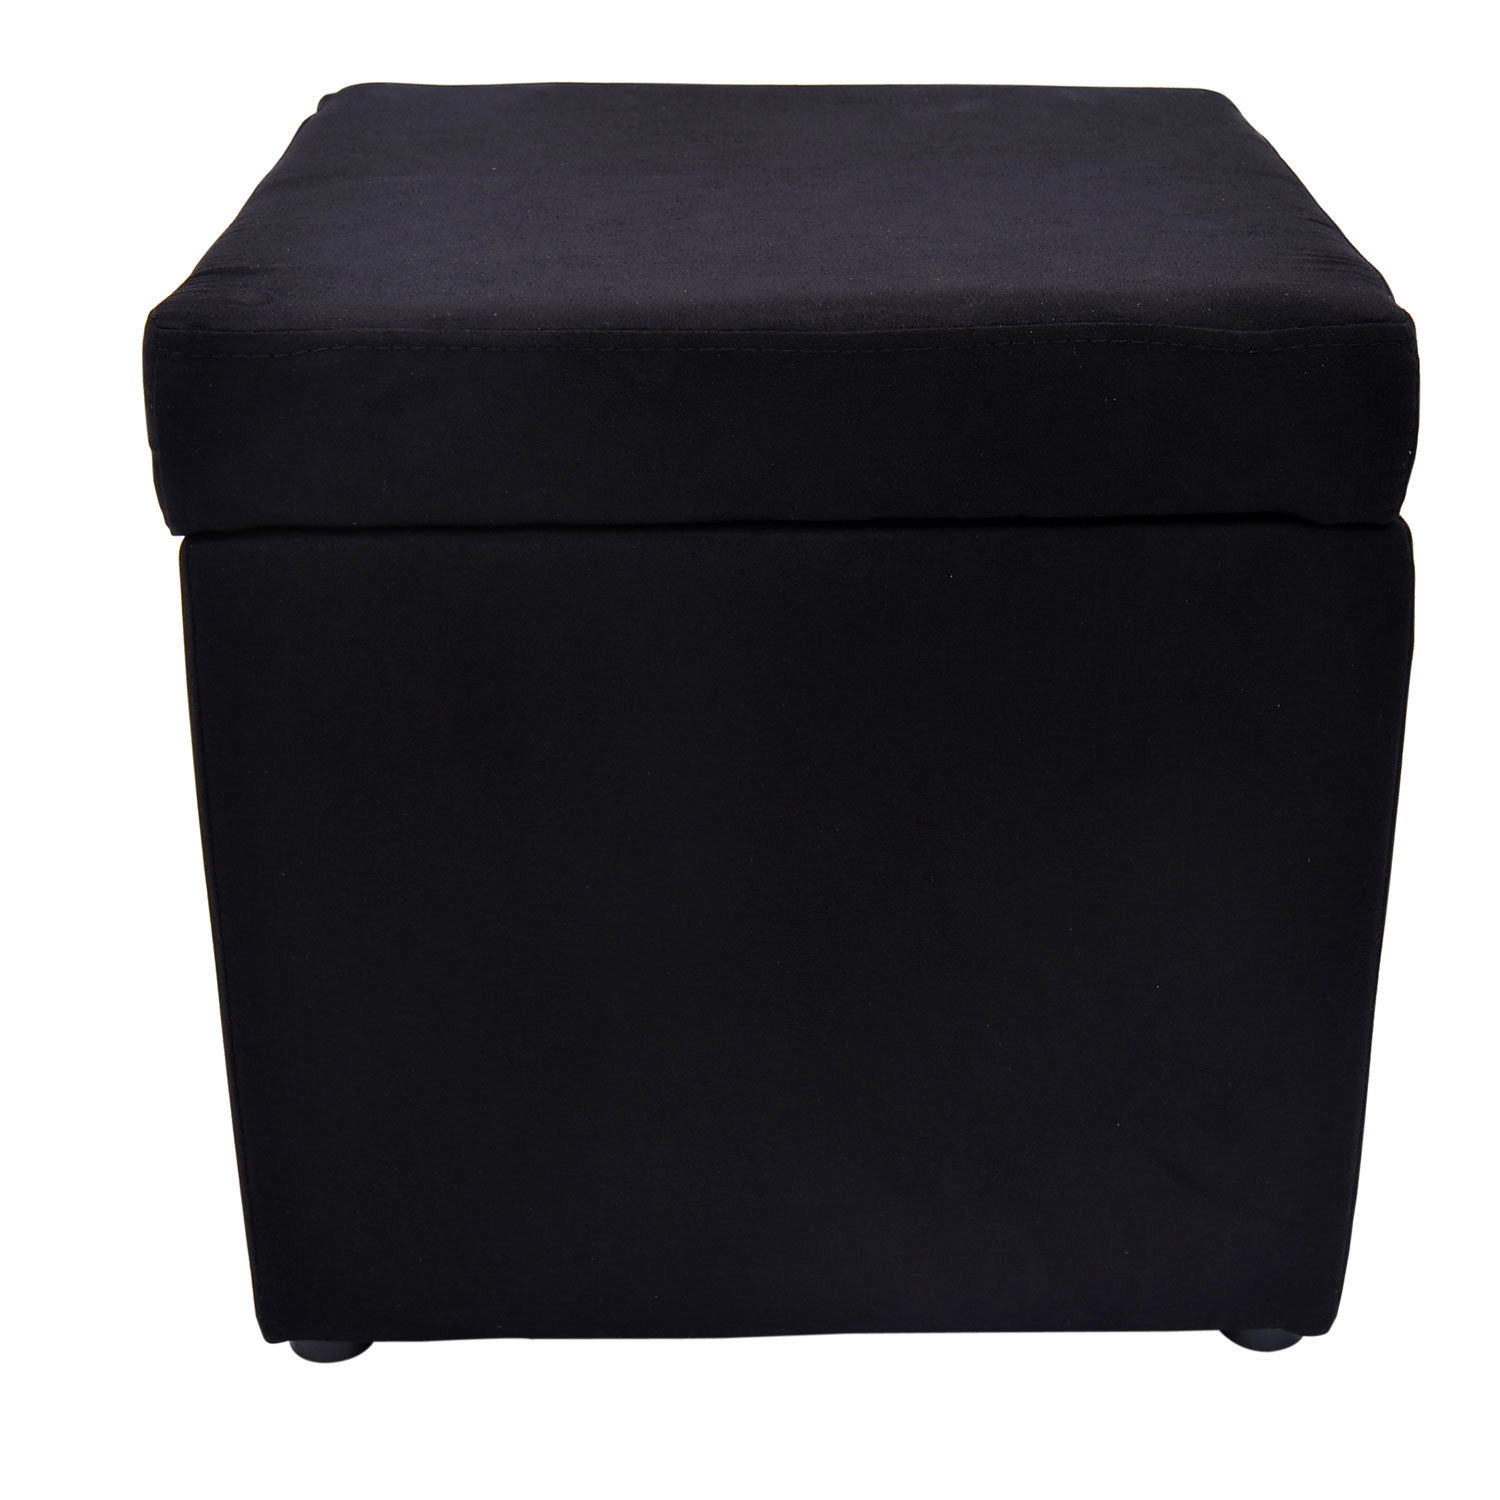 Details About New Storage Ottoman Footrest Seat Footstool Chair Cube  Microfiber Foot Rest